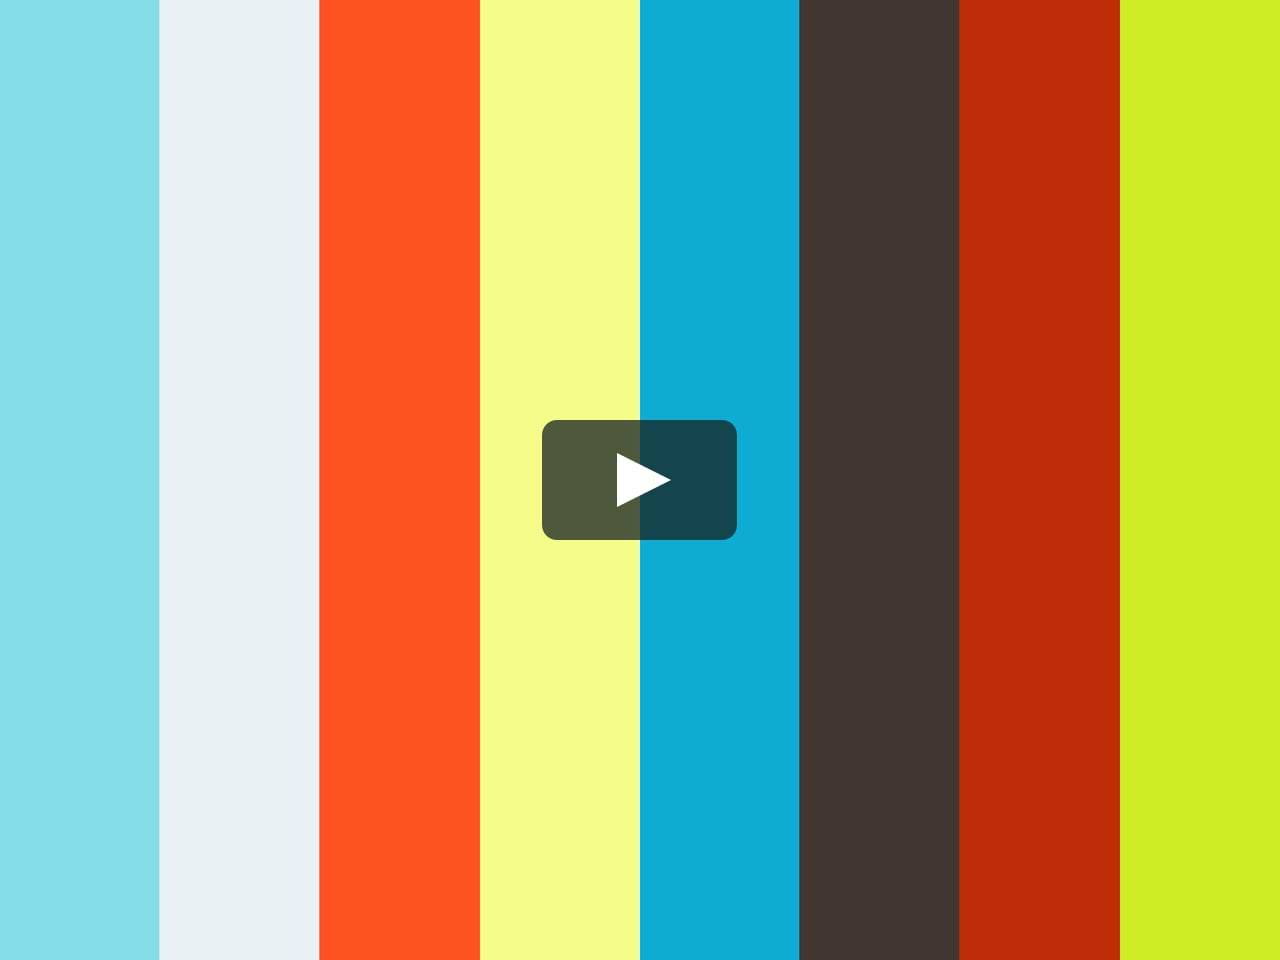 Johnny Cash - Hurt on Vimeo